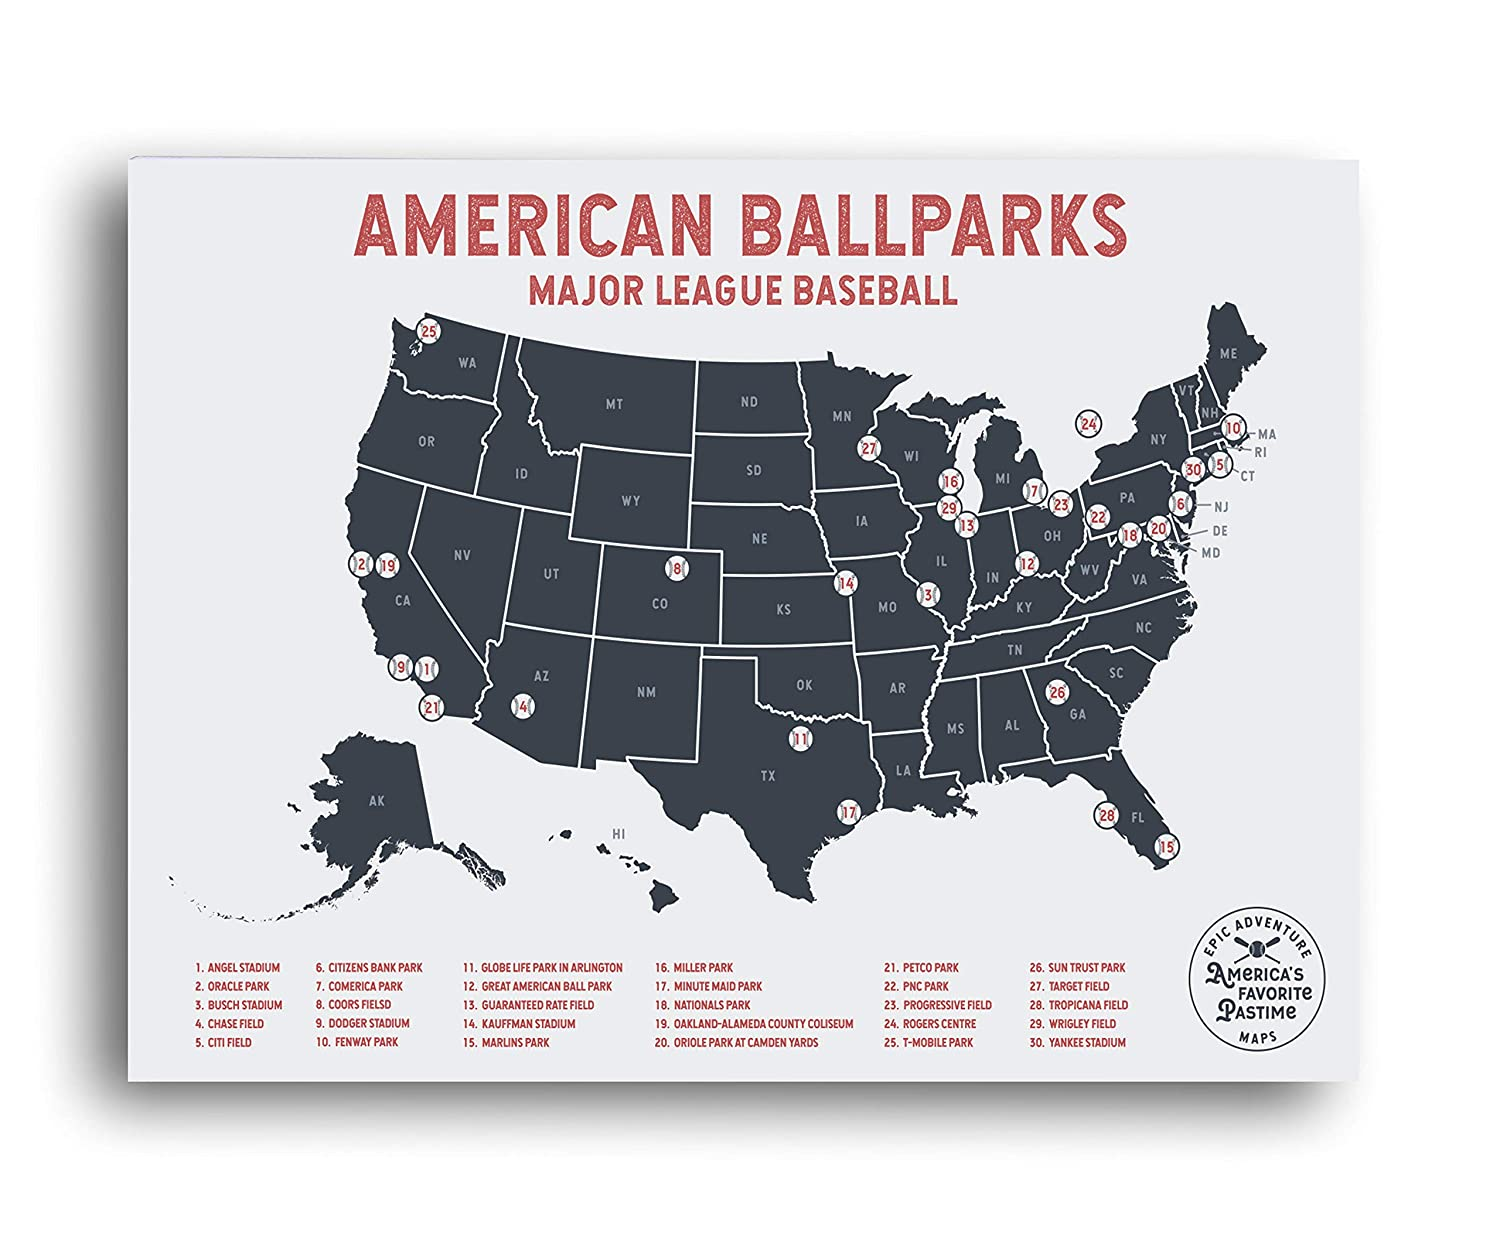 Epic Adventure Maps Major League Baseball Travel Map - Mark Your Travels to  Your Favorite MLB Baseball stadiums - Great Graduation Gift or Gift for ...